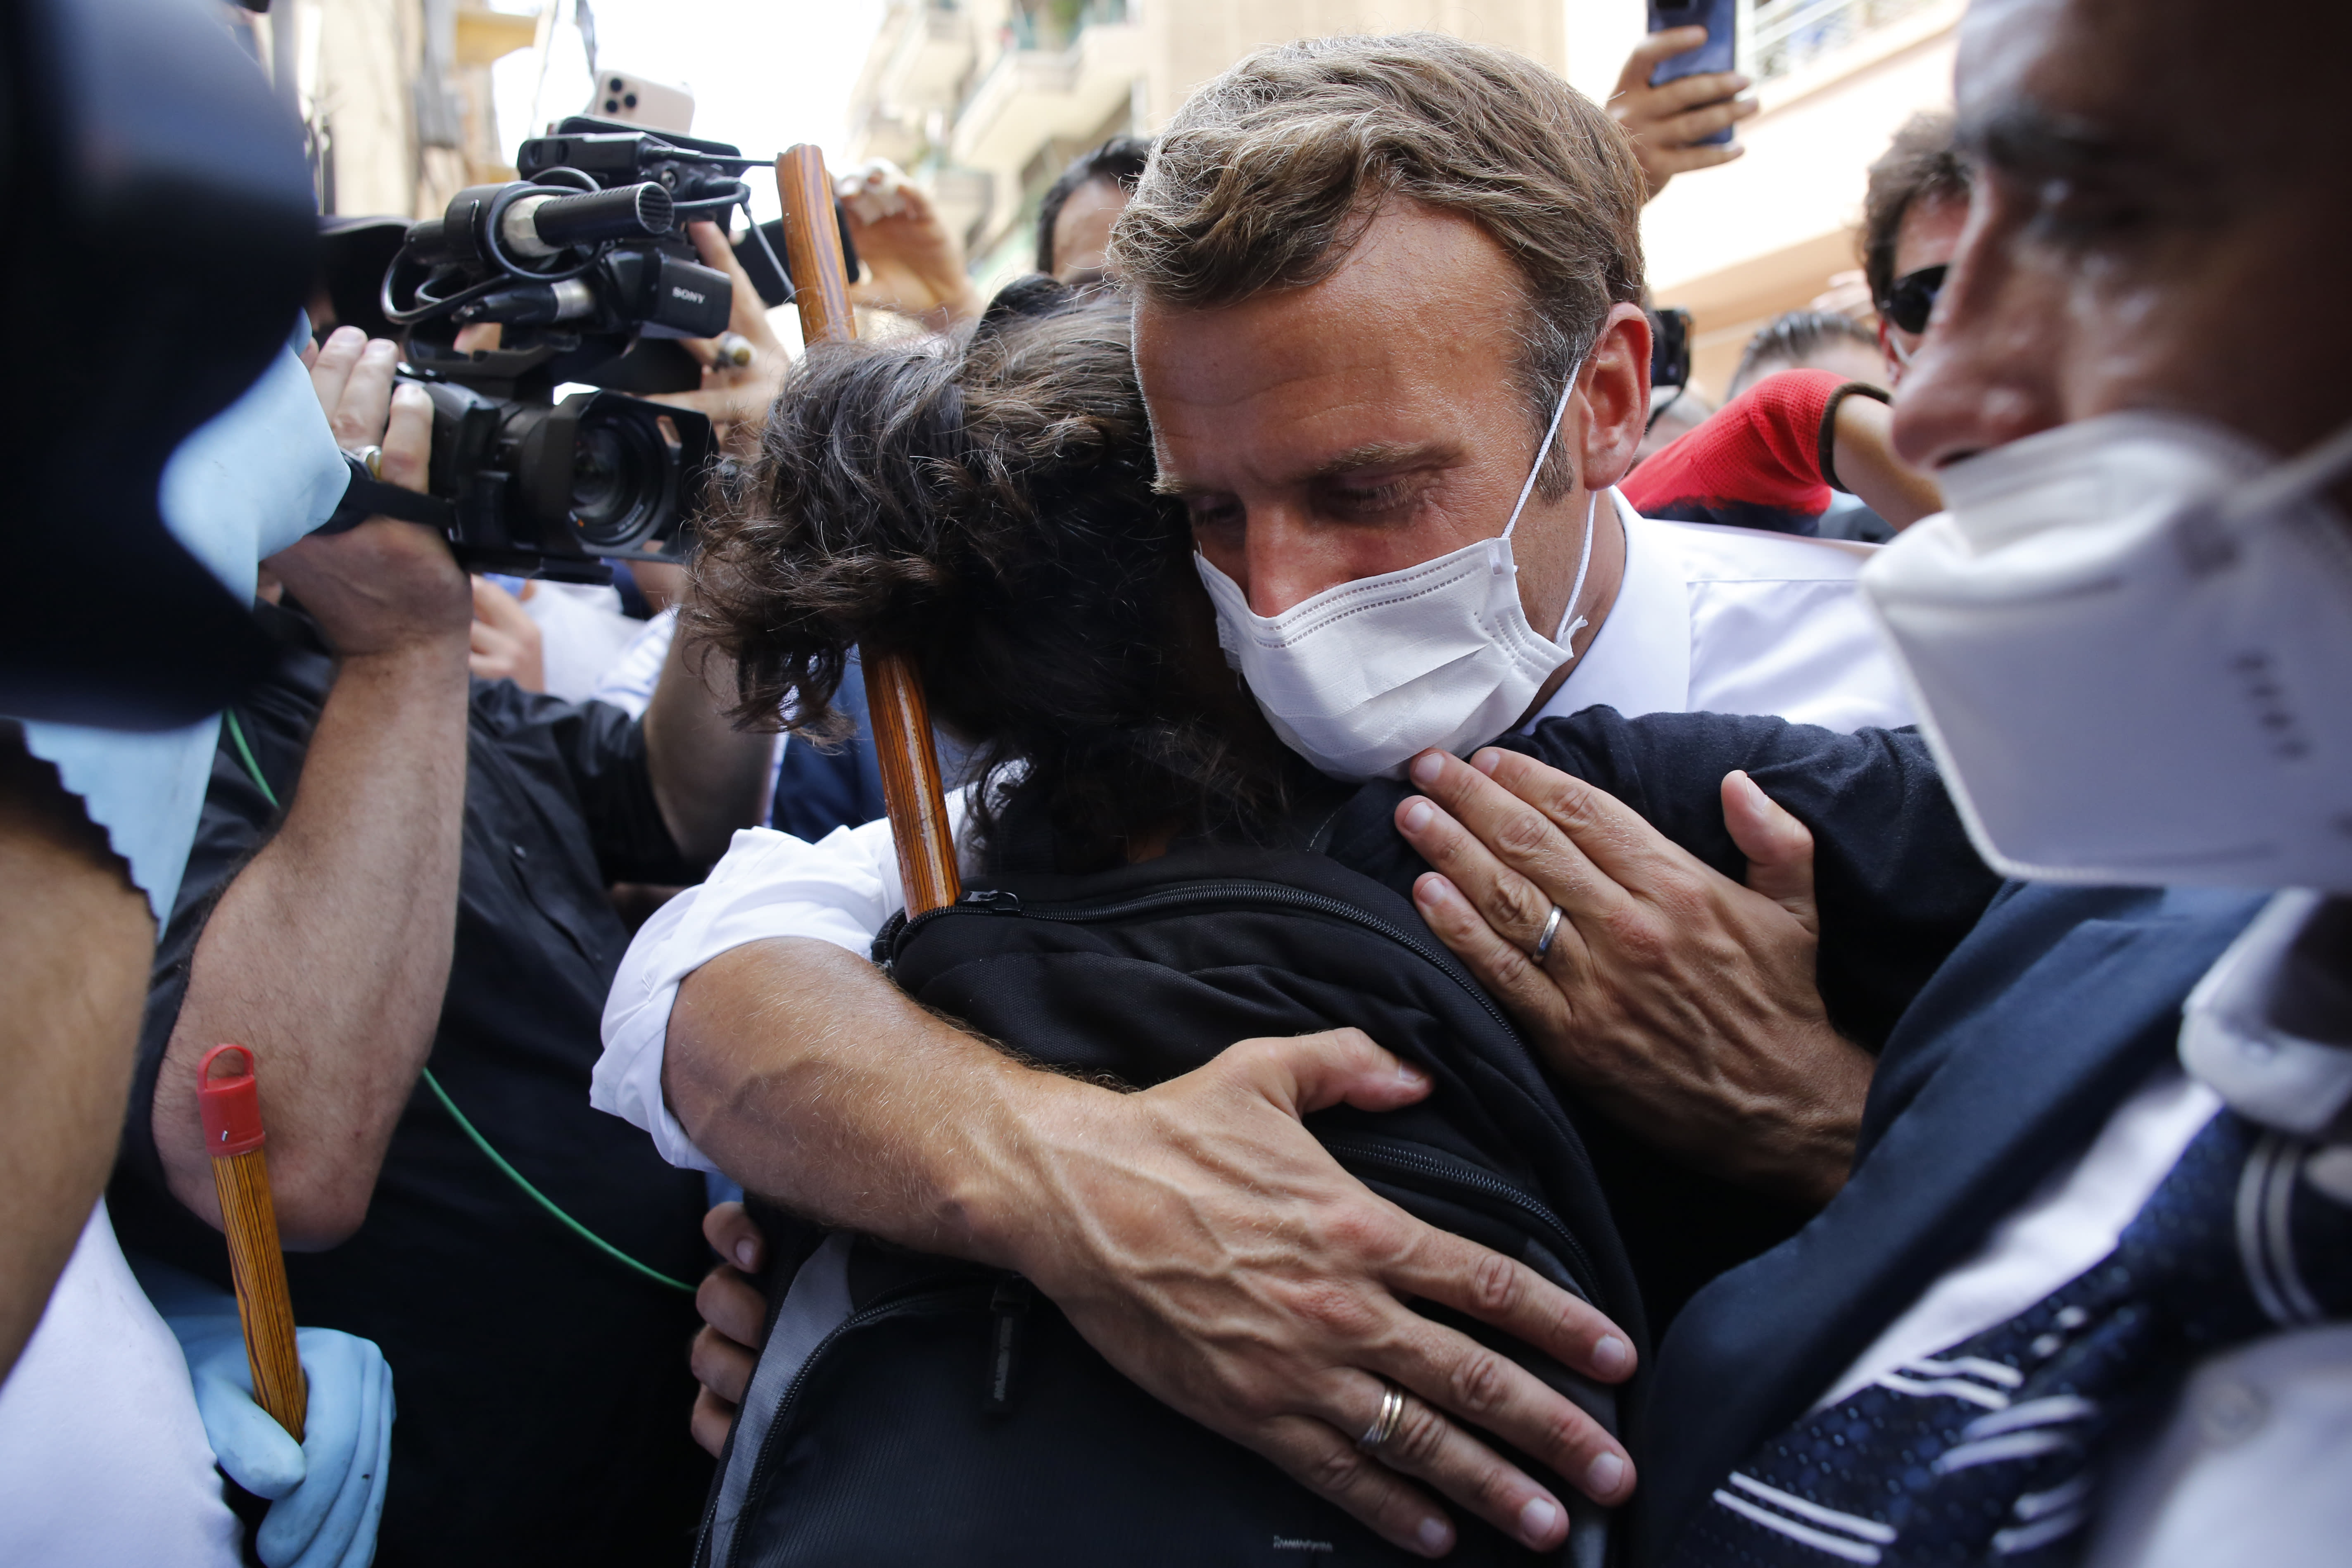 FILE - In this Aug. 6, 2020, file photo, French President Emmanuel Macron hugs a resident as he visits a devastated street of Beirut, Lebanon. In the wake of Beirut's massive port explosion, Macron has taken a tough line, setting deadlines for Lebanon's politicians to carry out reforms. His hands-on approach has angered some in Lebanon and brought praise from others. (AP Photo/Thibault Camus, Pool)